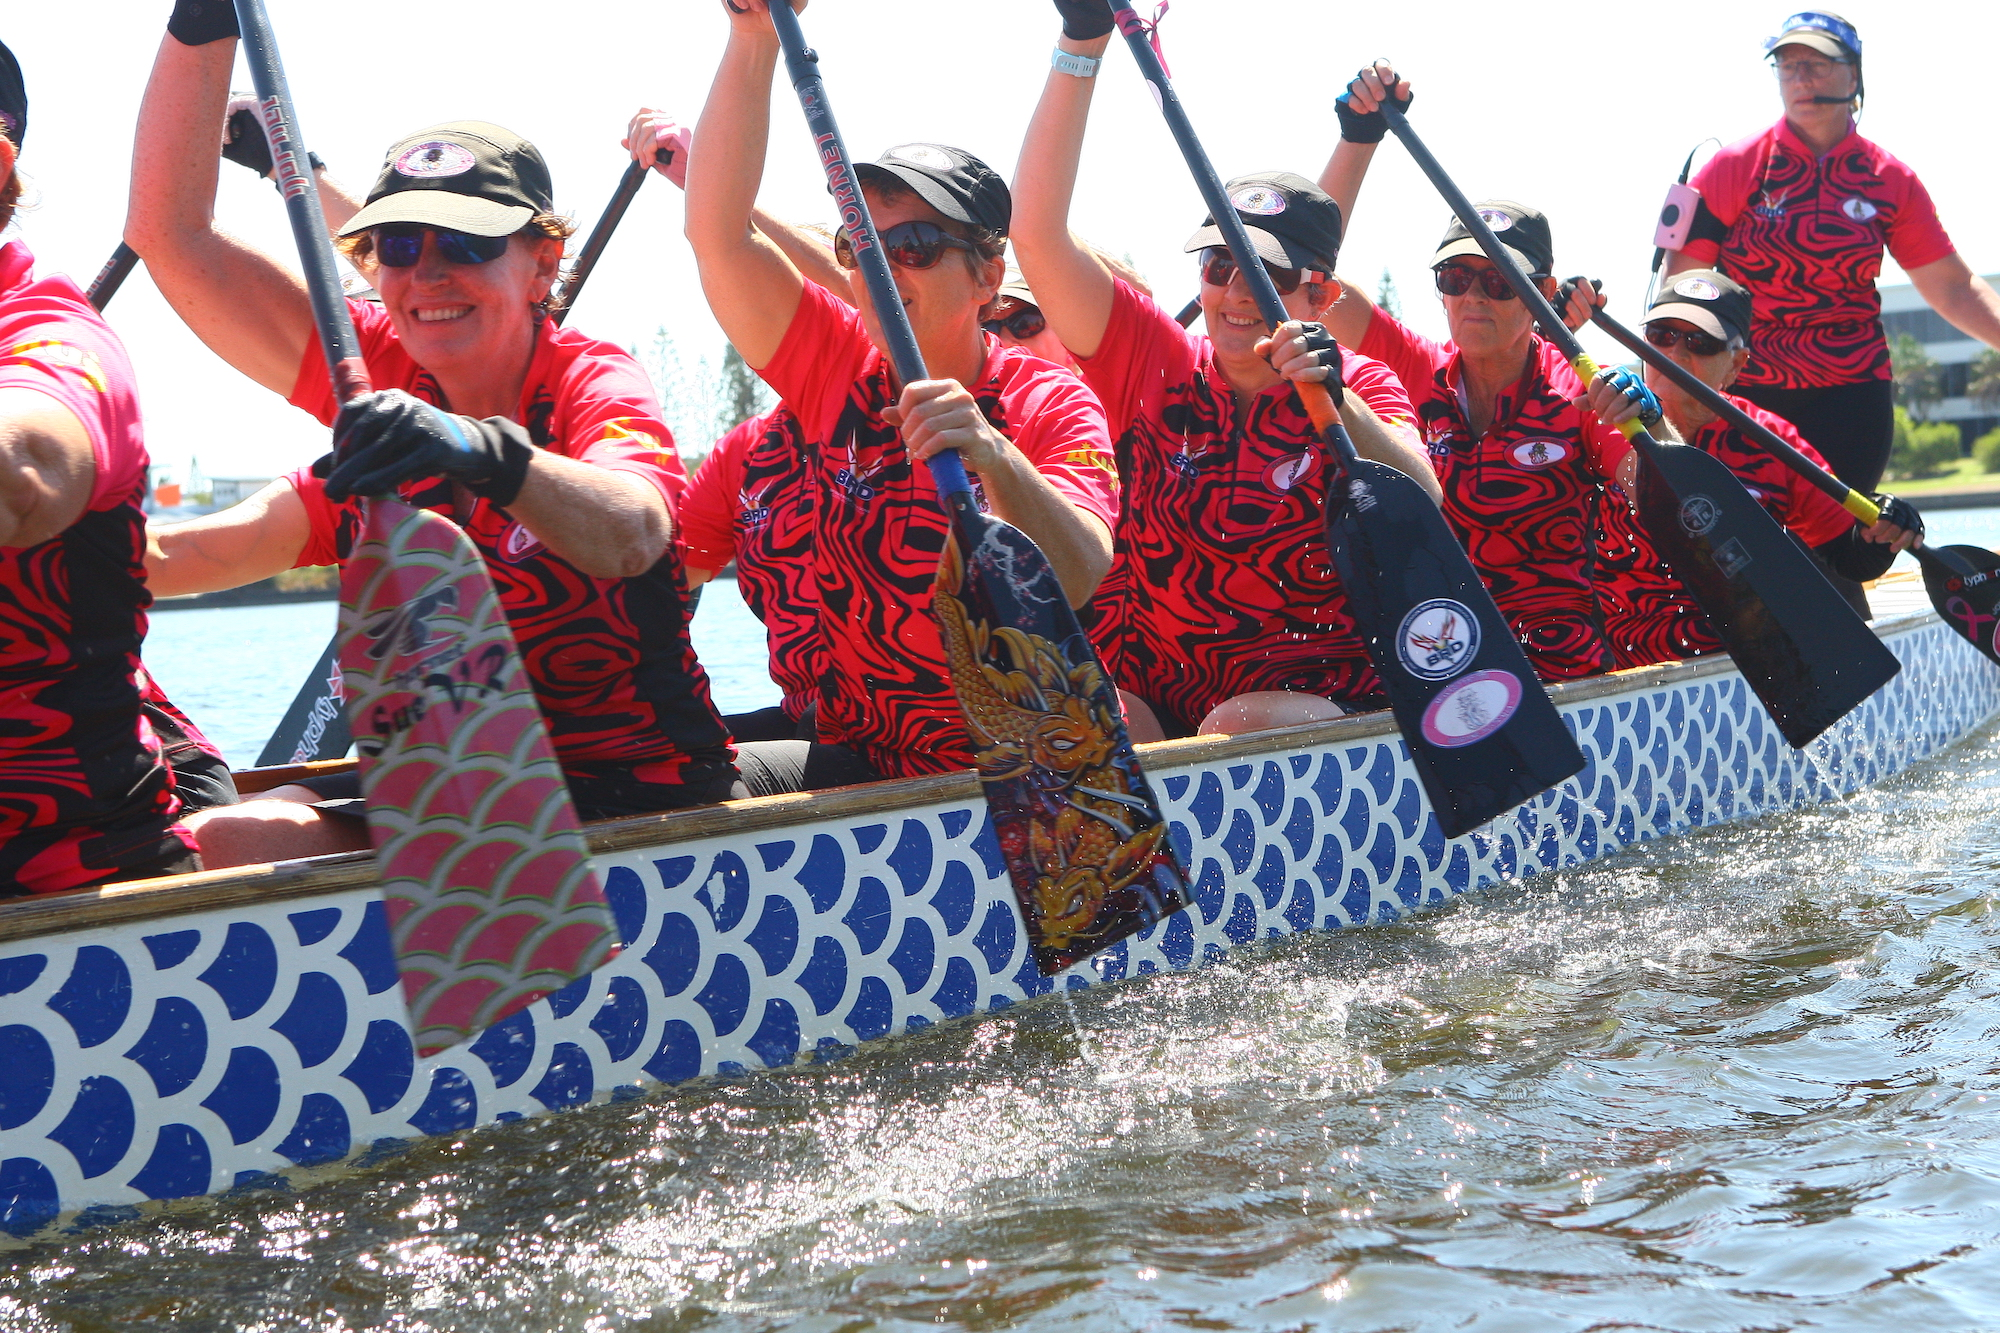 come-and-try-day-mbt-brisbane-breast-cancer-dragon-boat-paddling-team